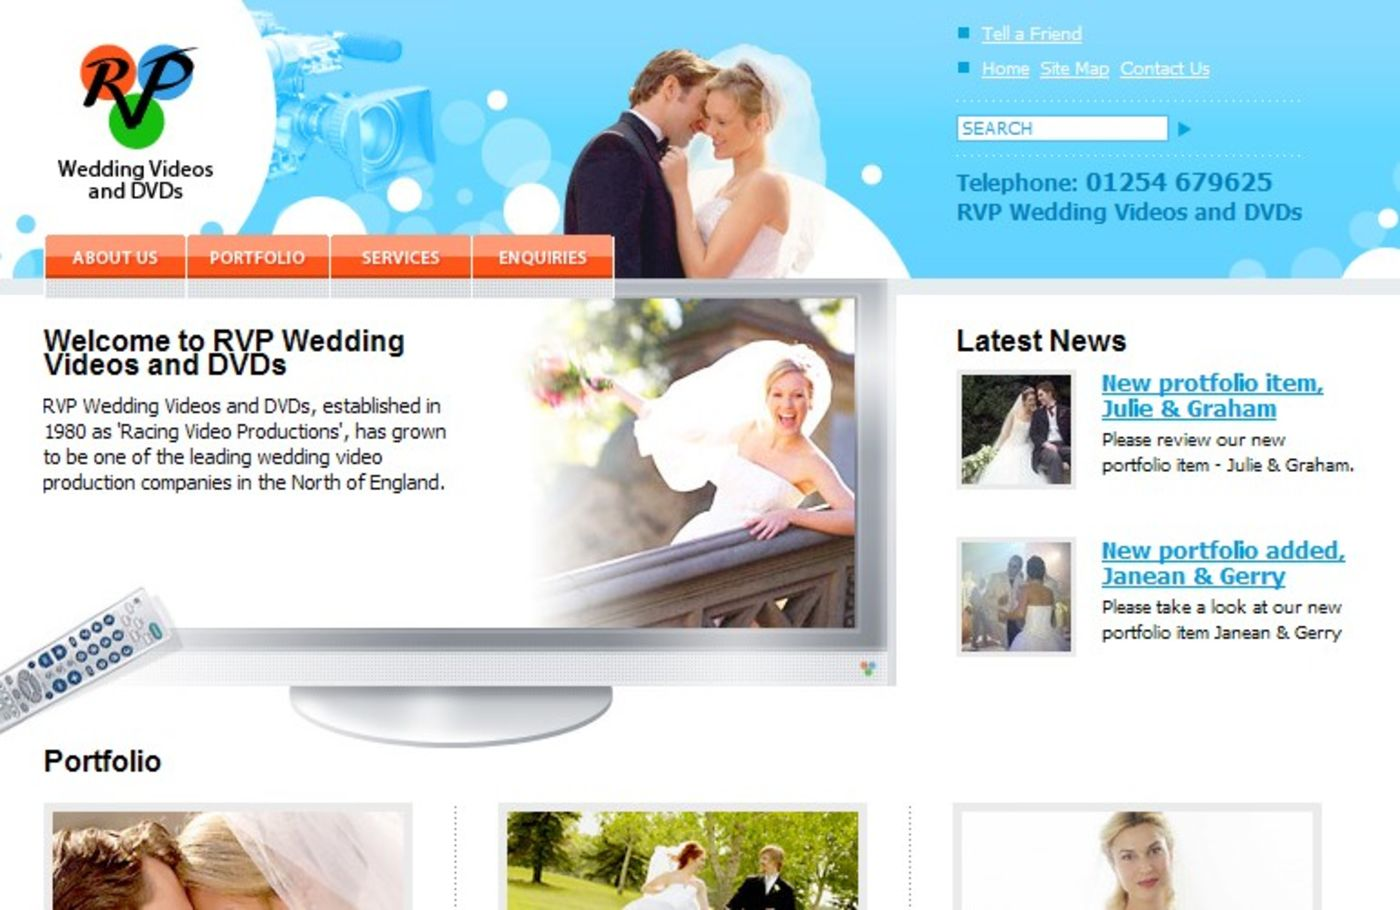 RVP Wedding Videos and DVDs Homepage header